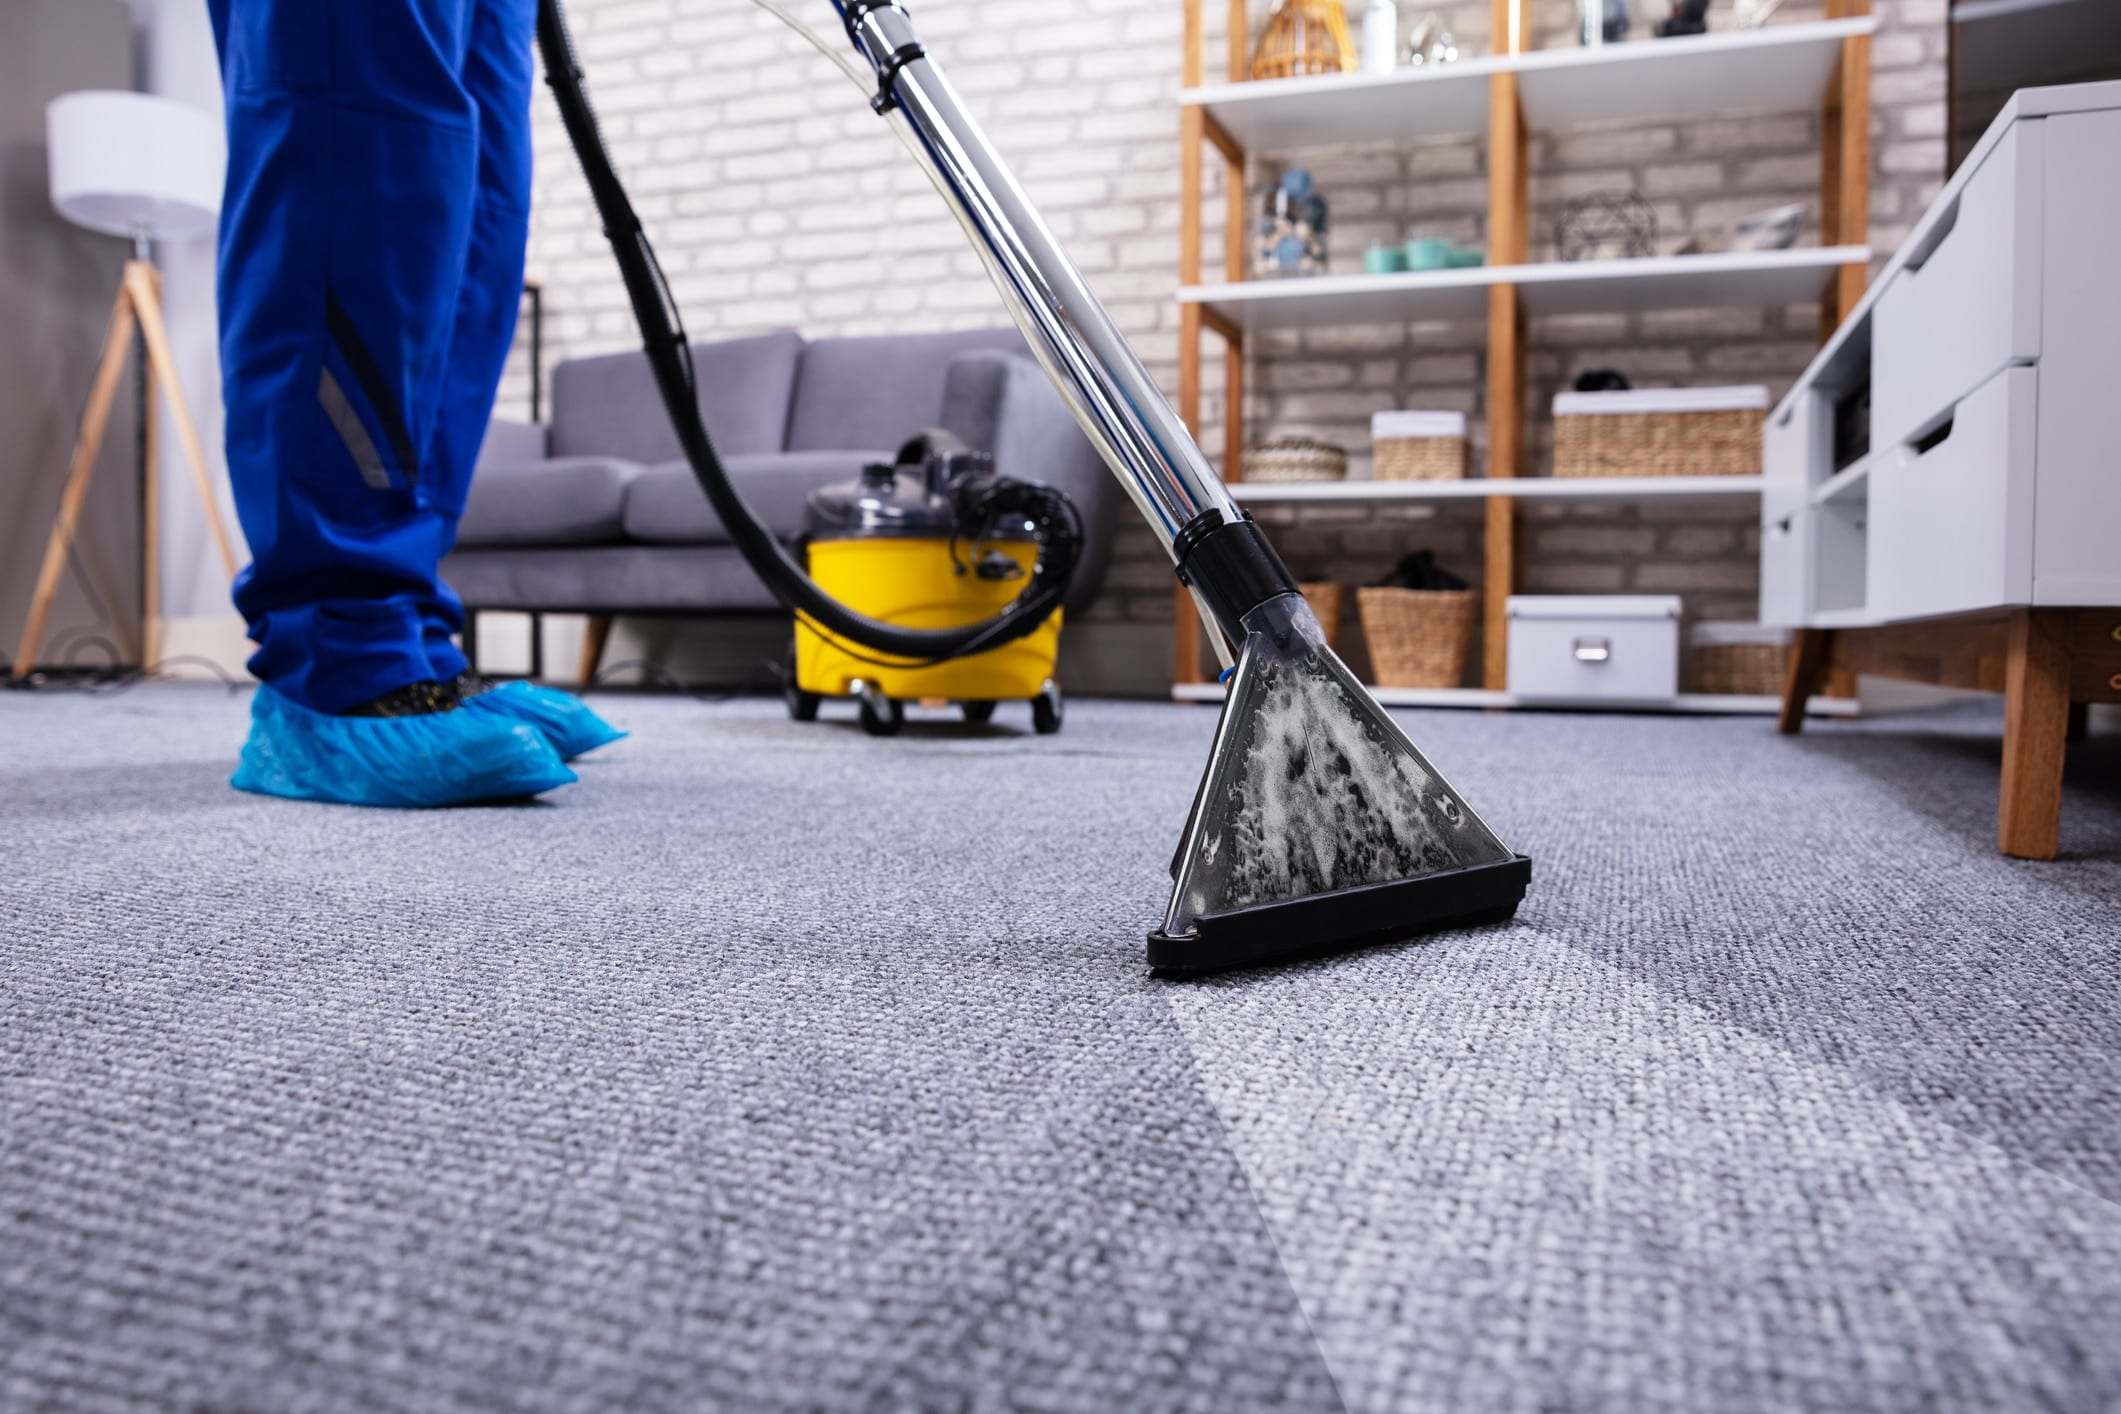 5 Tricky Types of Carpet Stains